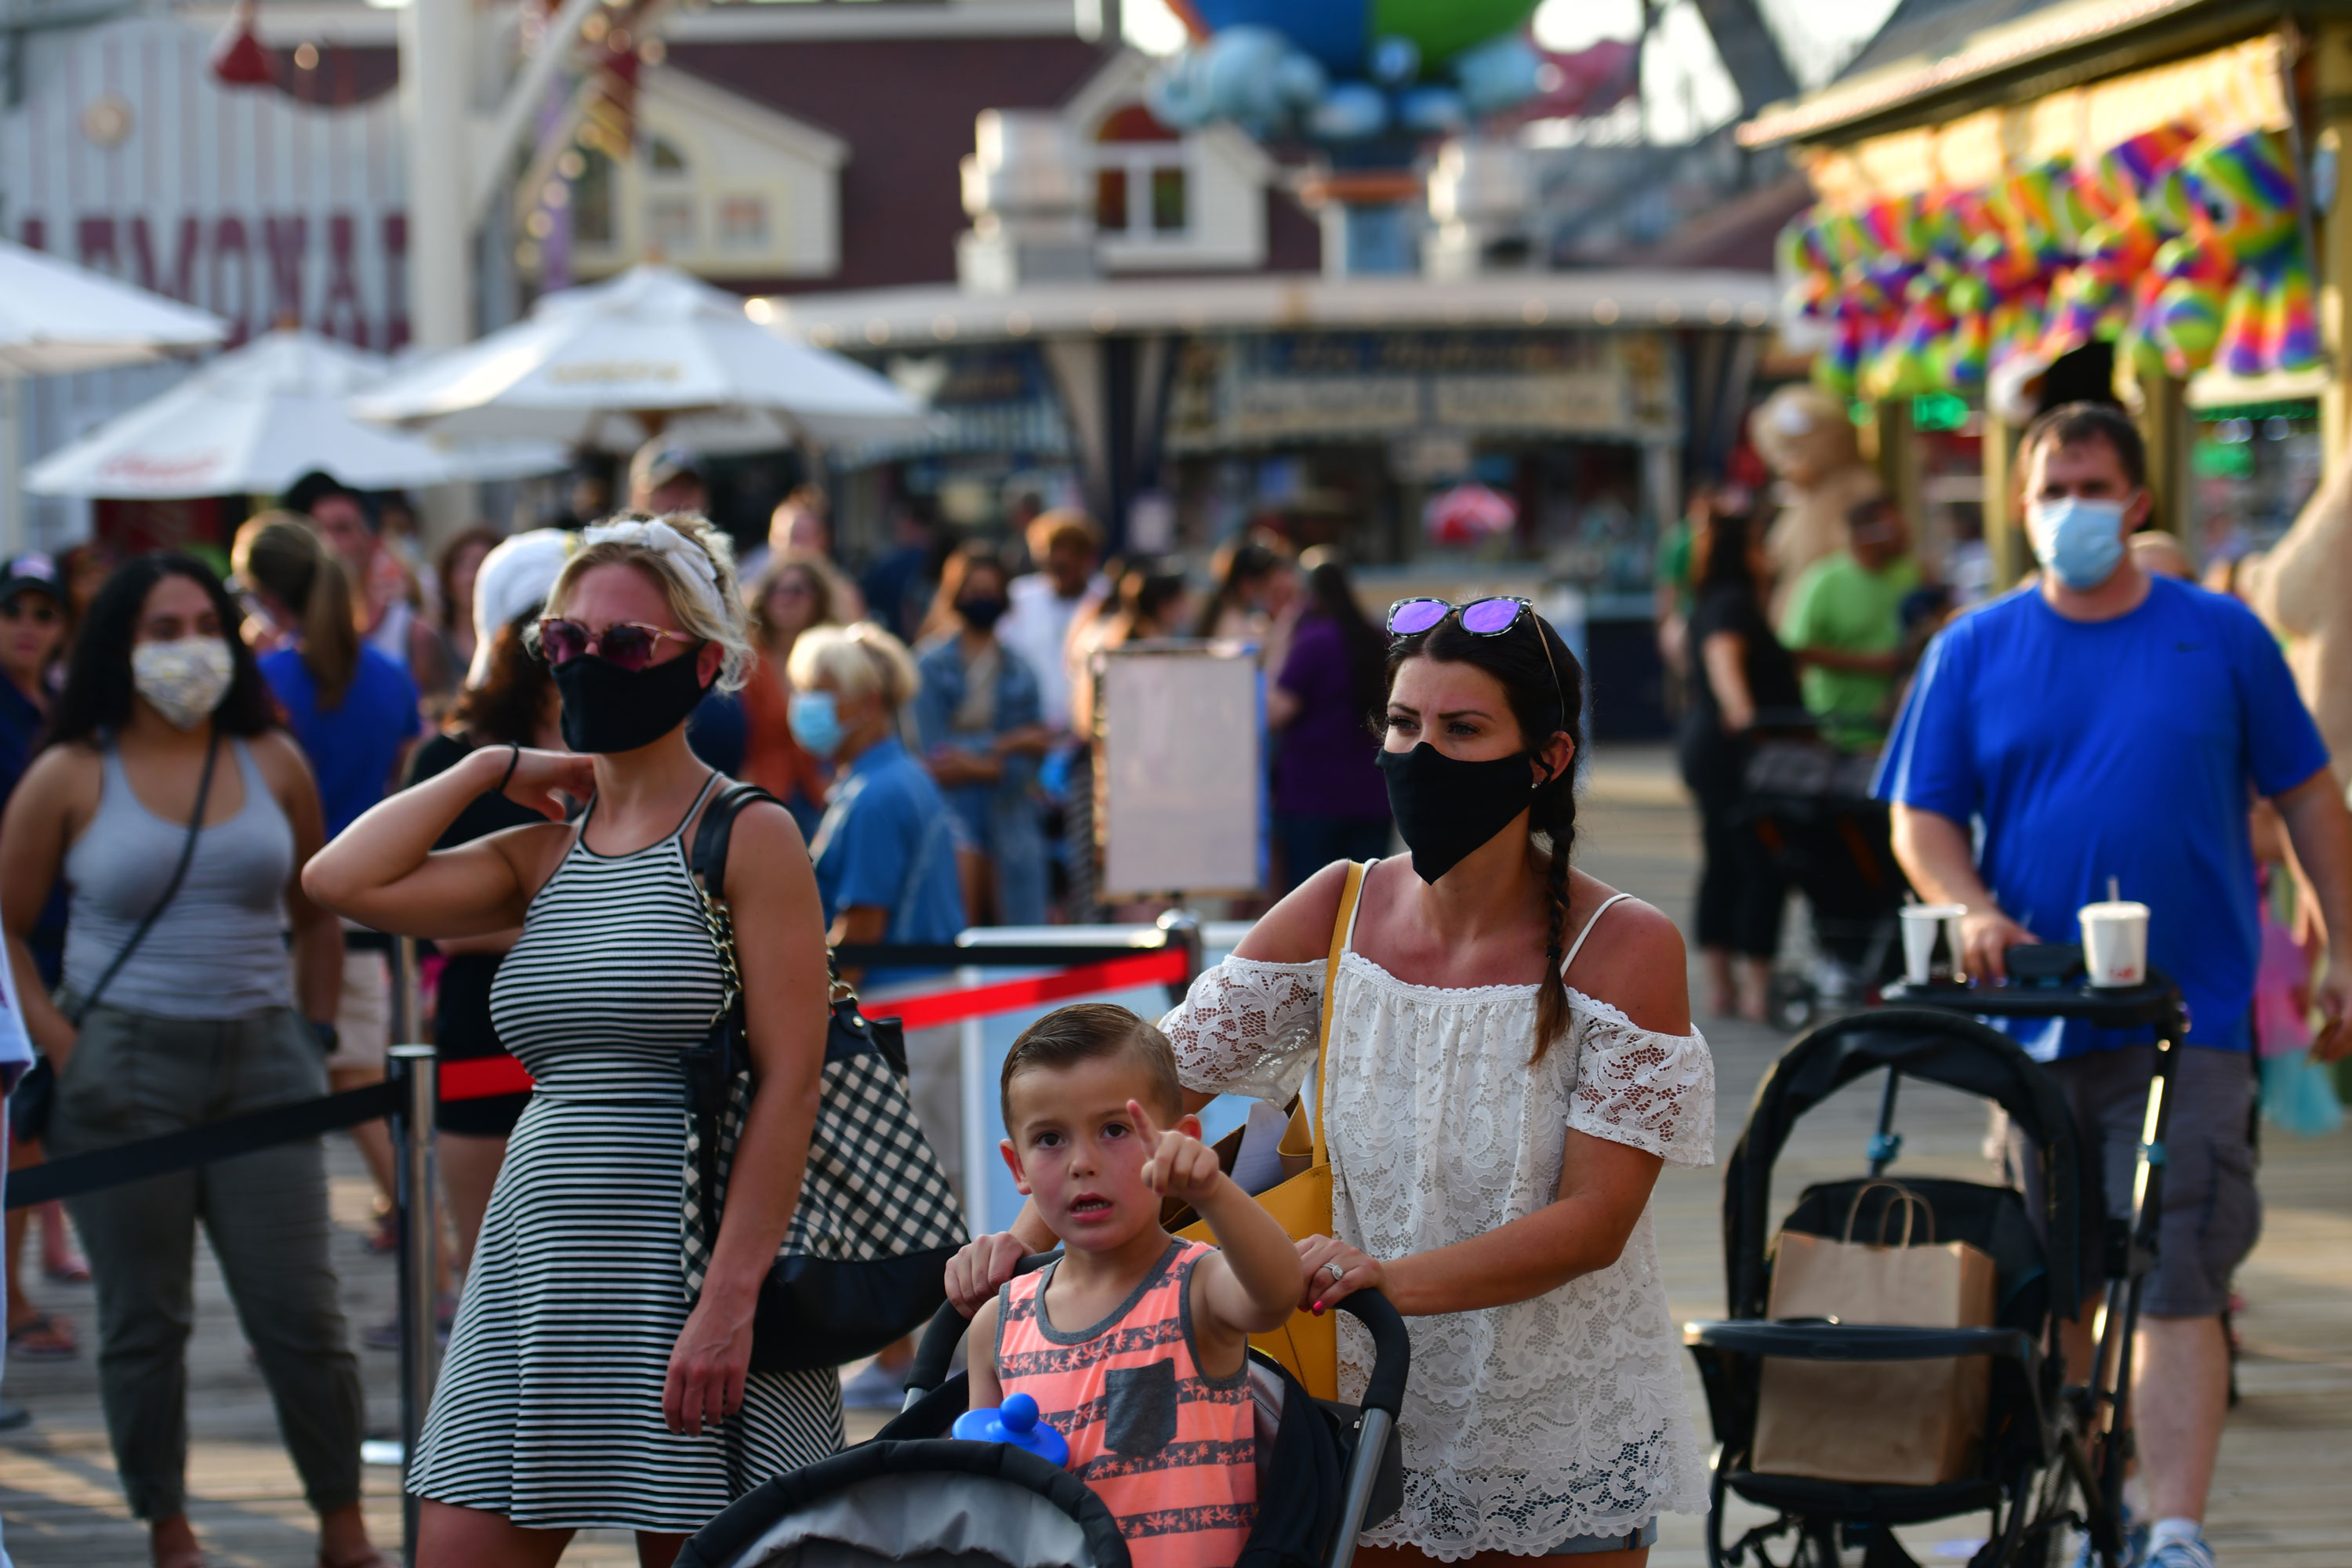 WILDWOOD, NJ - JULY 03: A family waits in line at the entrance to an amusement pier on July 3, 2020 in Wildwood, New Jersey. New Jersey beaches have reopened for the July 4th holiday as some coronavirus restrictions have been lifted, along with casinos, amusement rides and water parks at limited capacity. (Photo by Mark Makela/Getty Images)